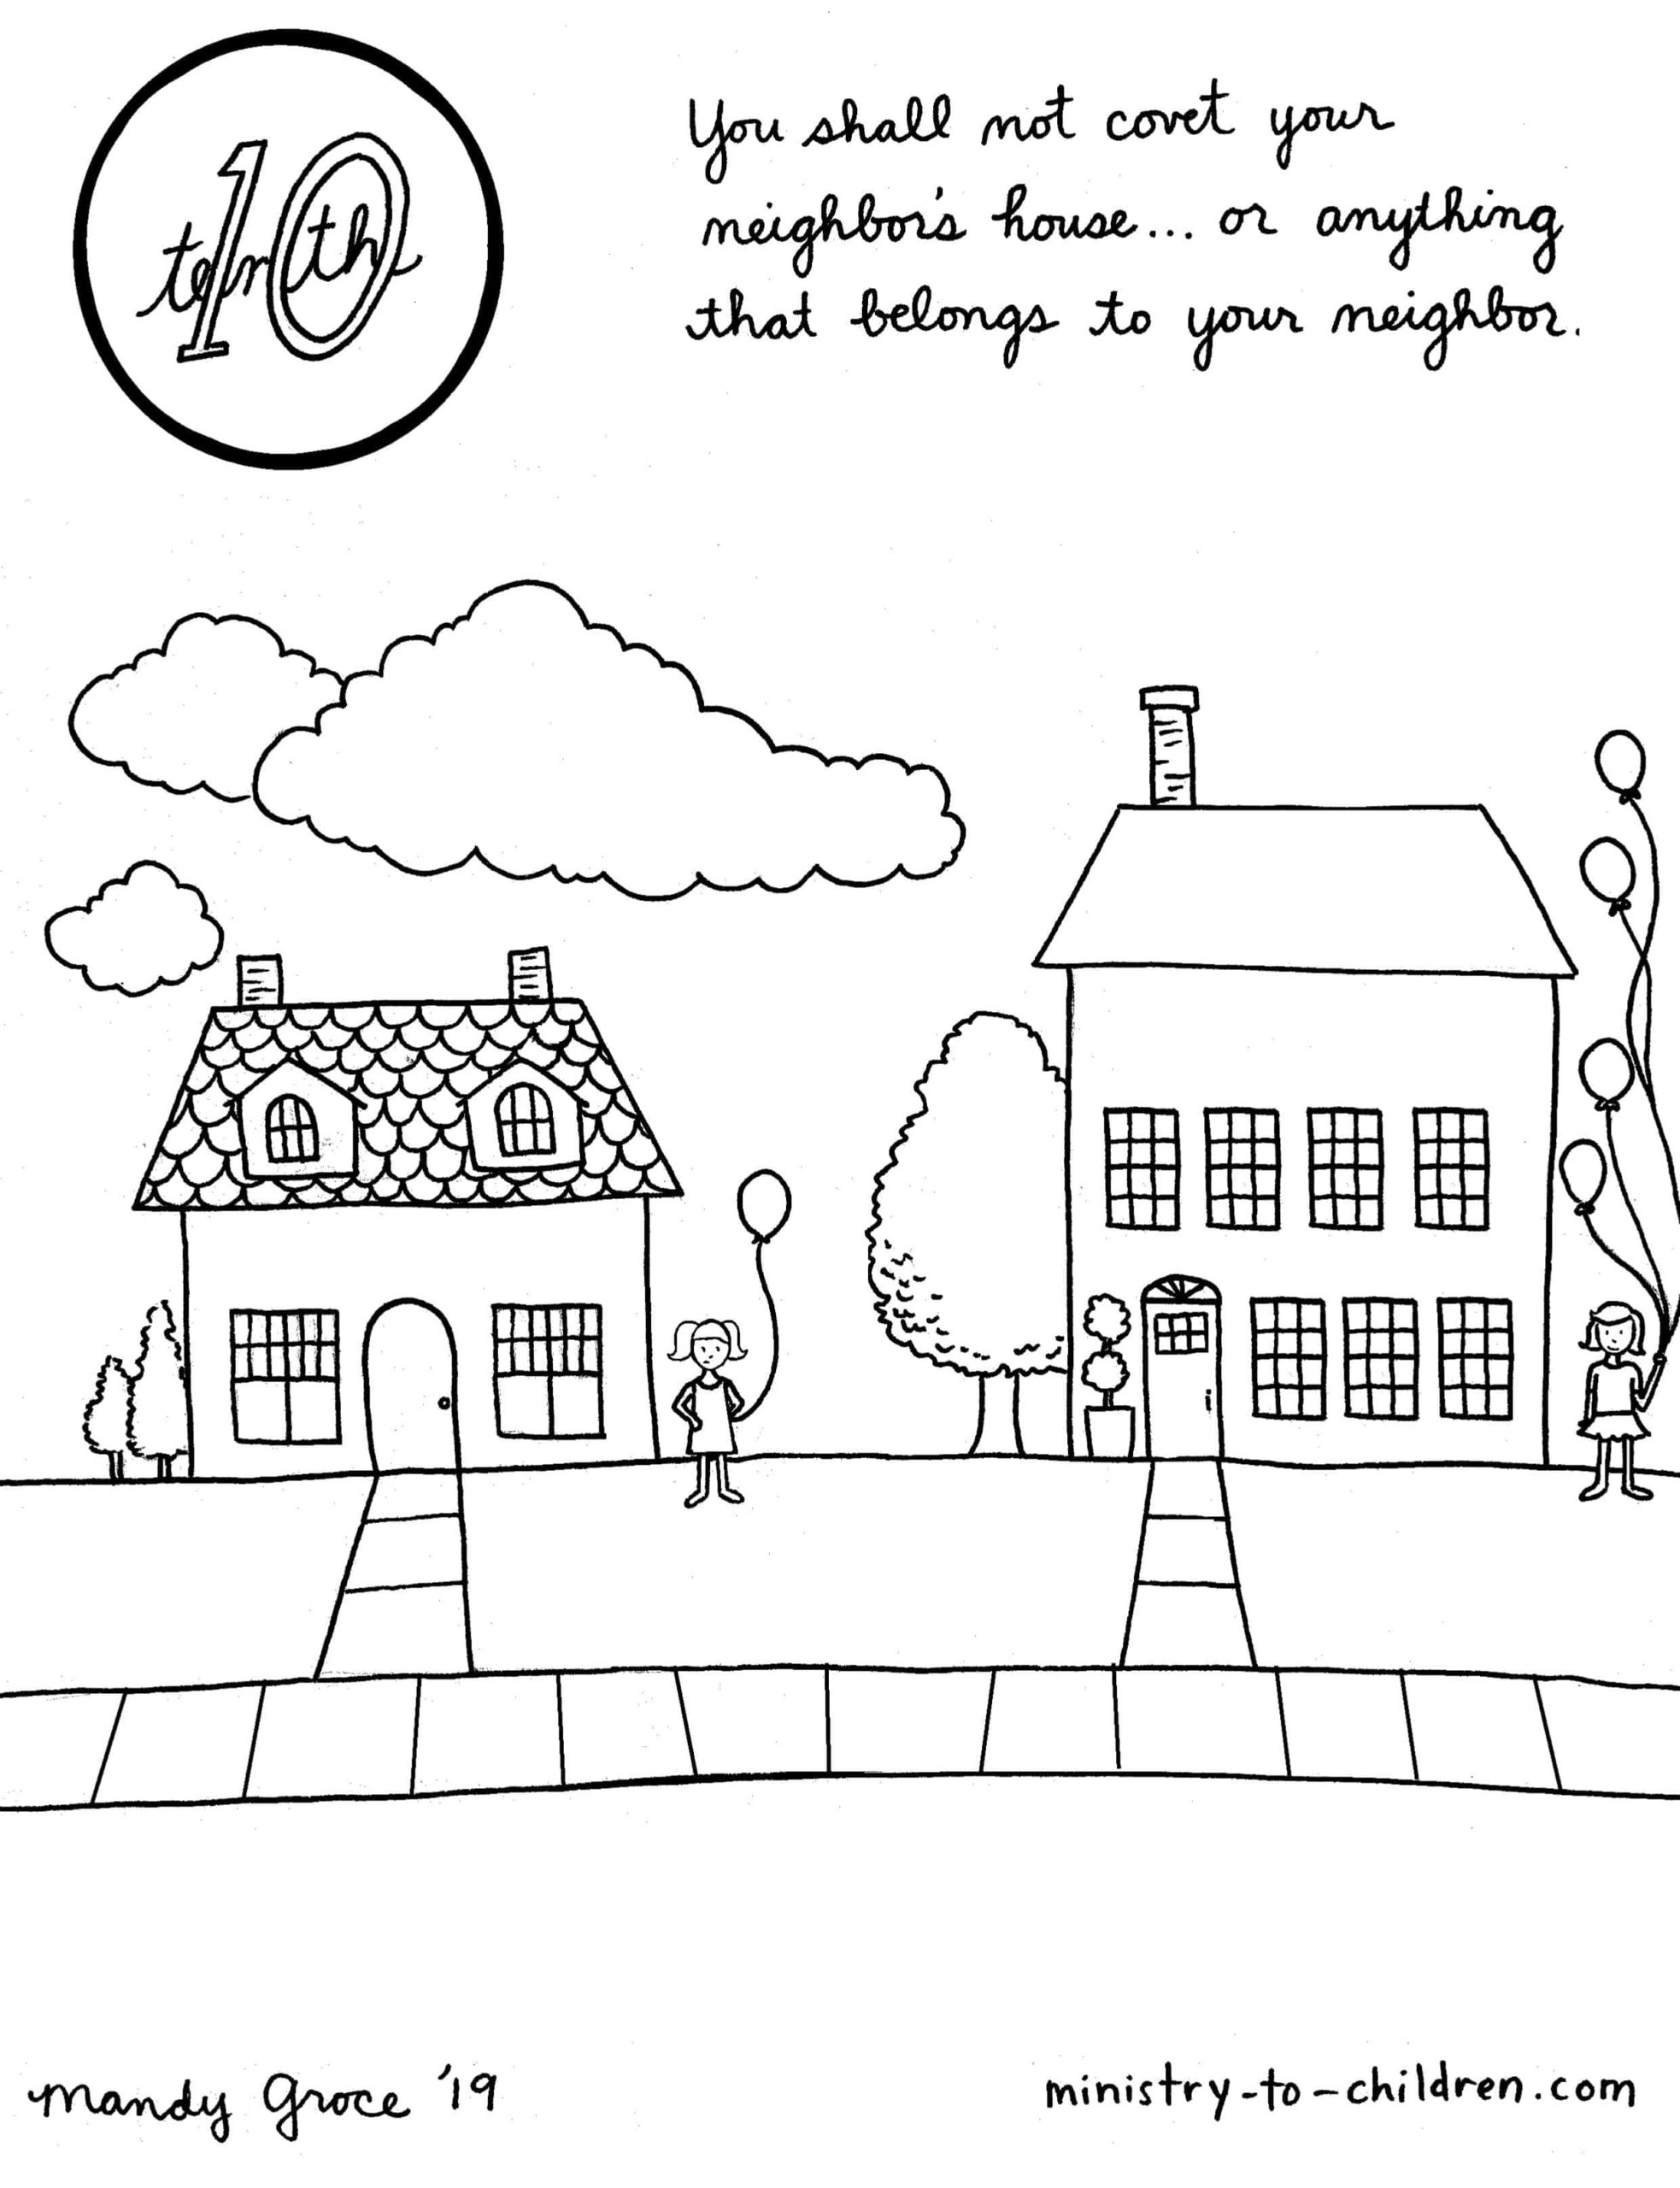 Free Love Your Neighbor Coloring Page, Download Free Clip Art ... | 2560x1966